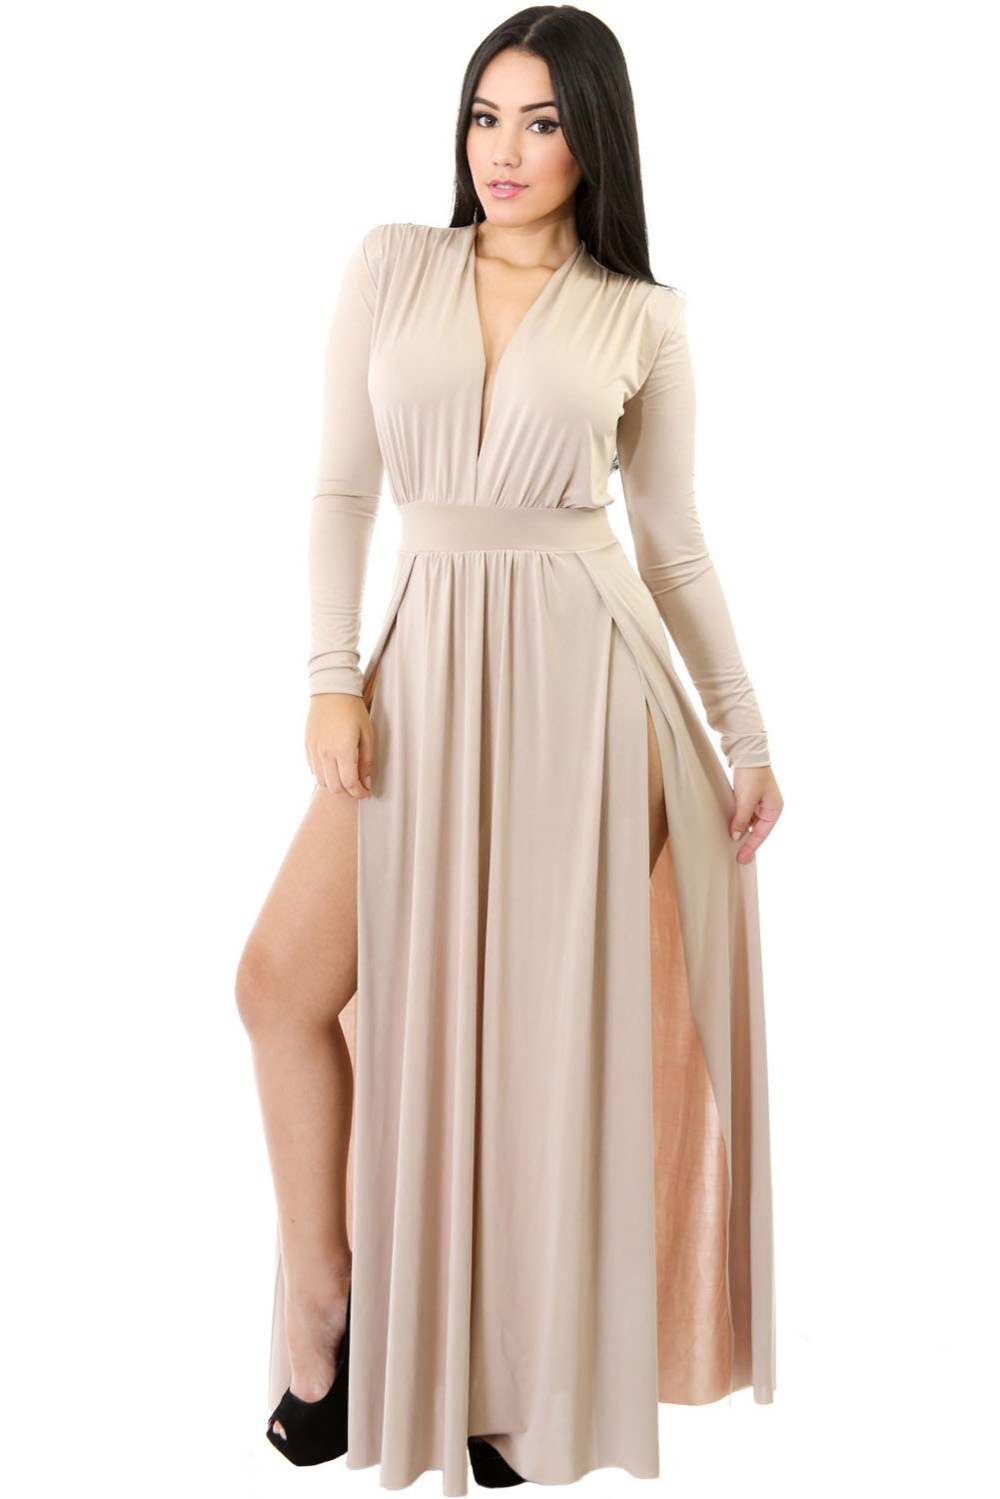 Apricot-Super-Classy-Long-Sleeves-Double-Slit-Long-Maxi-Dress-LC61282-18-1